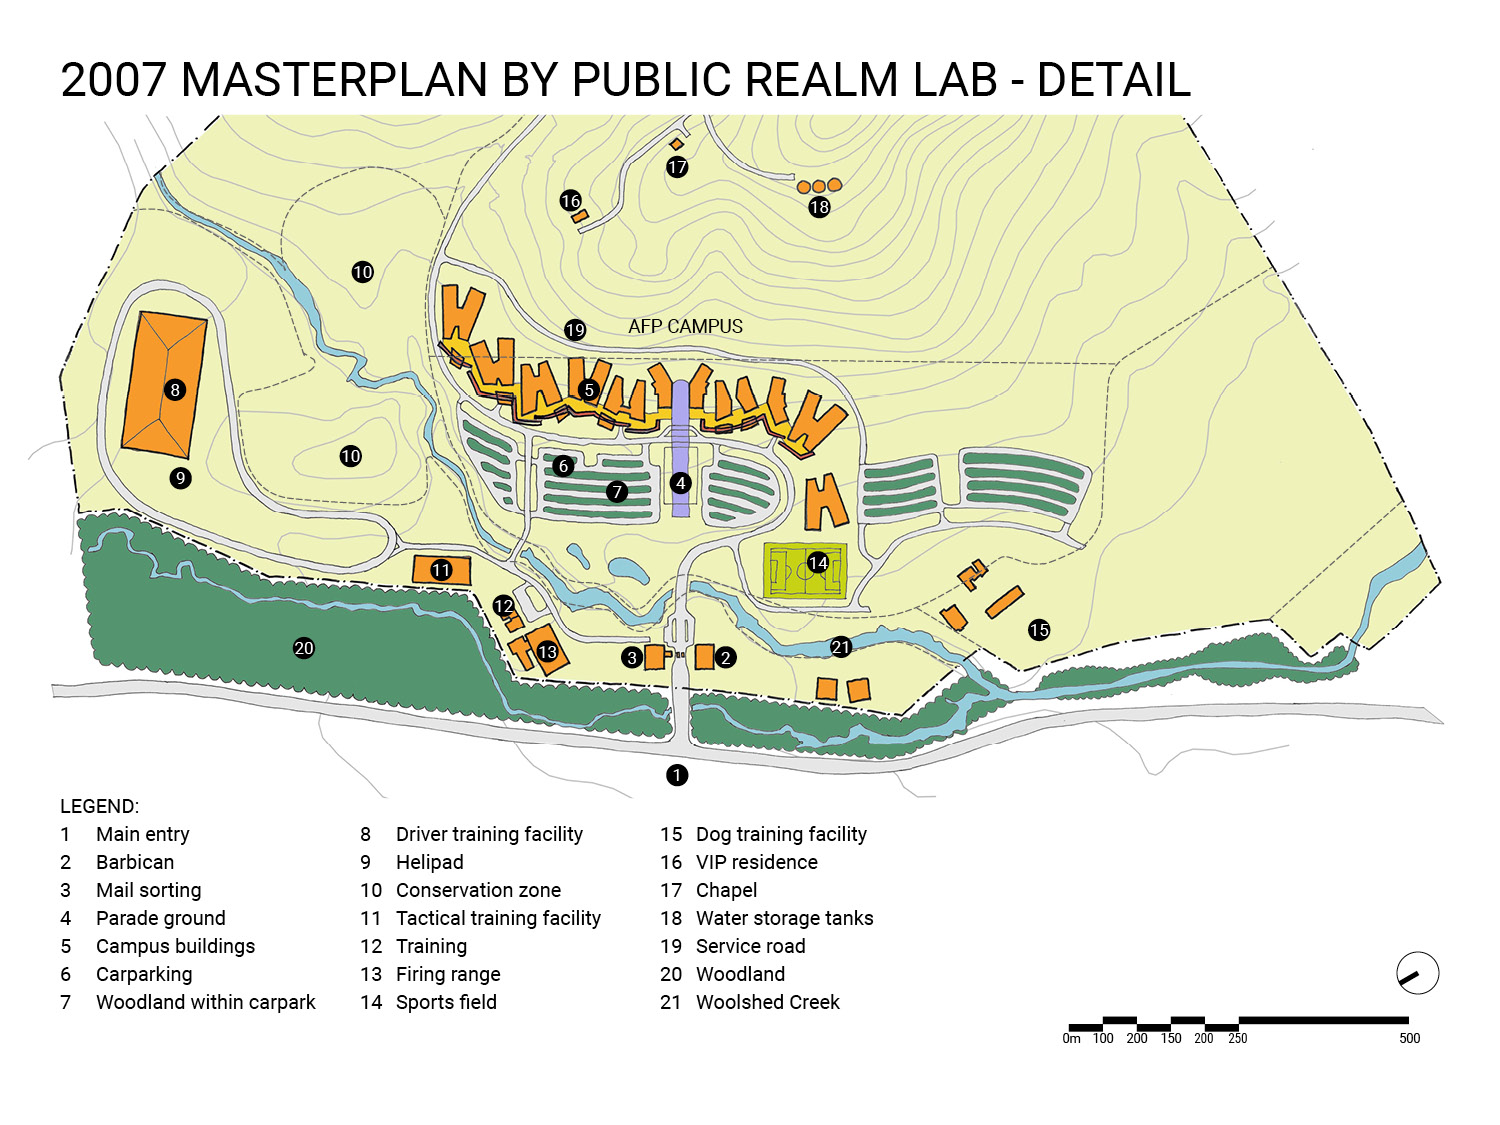 Public_Realm_Lab_Canberra_05_Approved_Masterplan_Detail.jpg